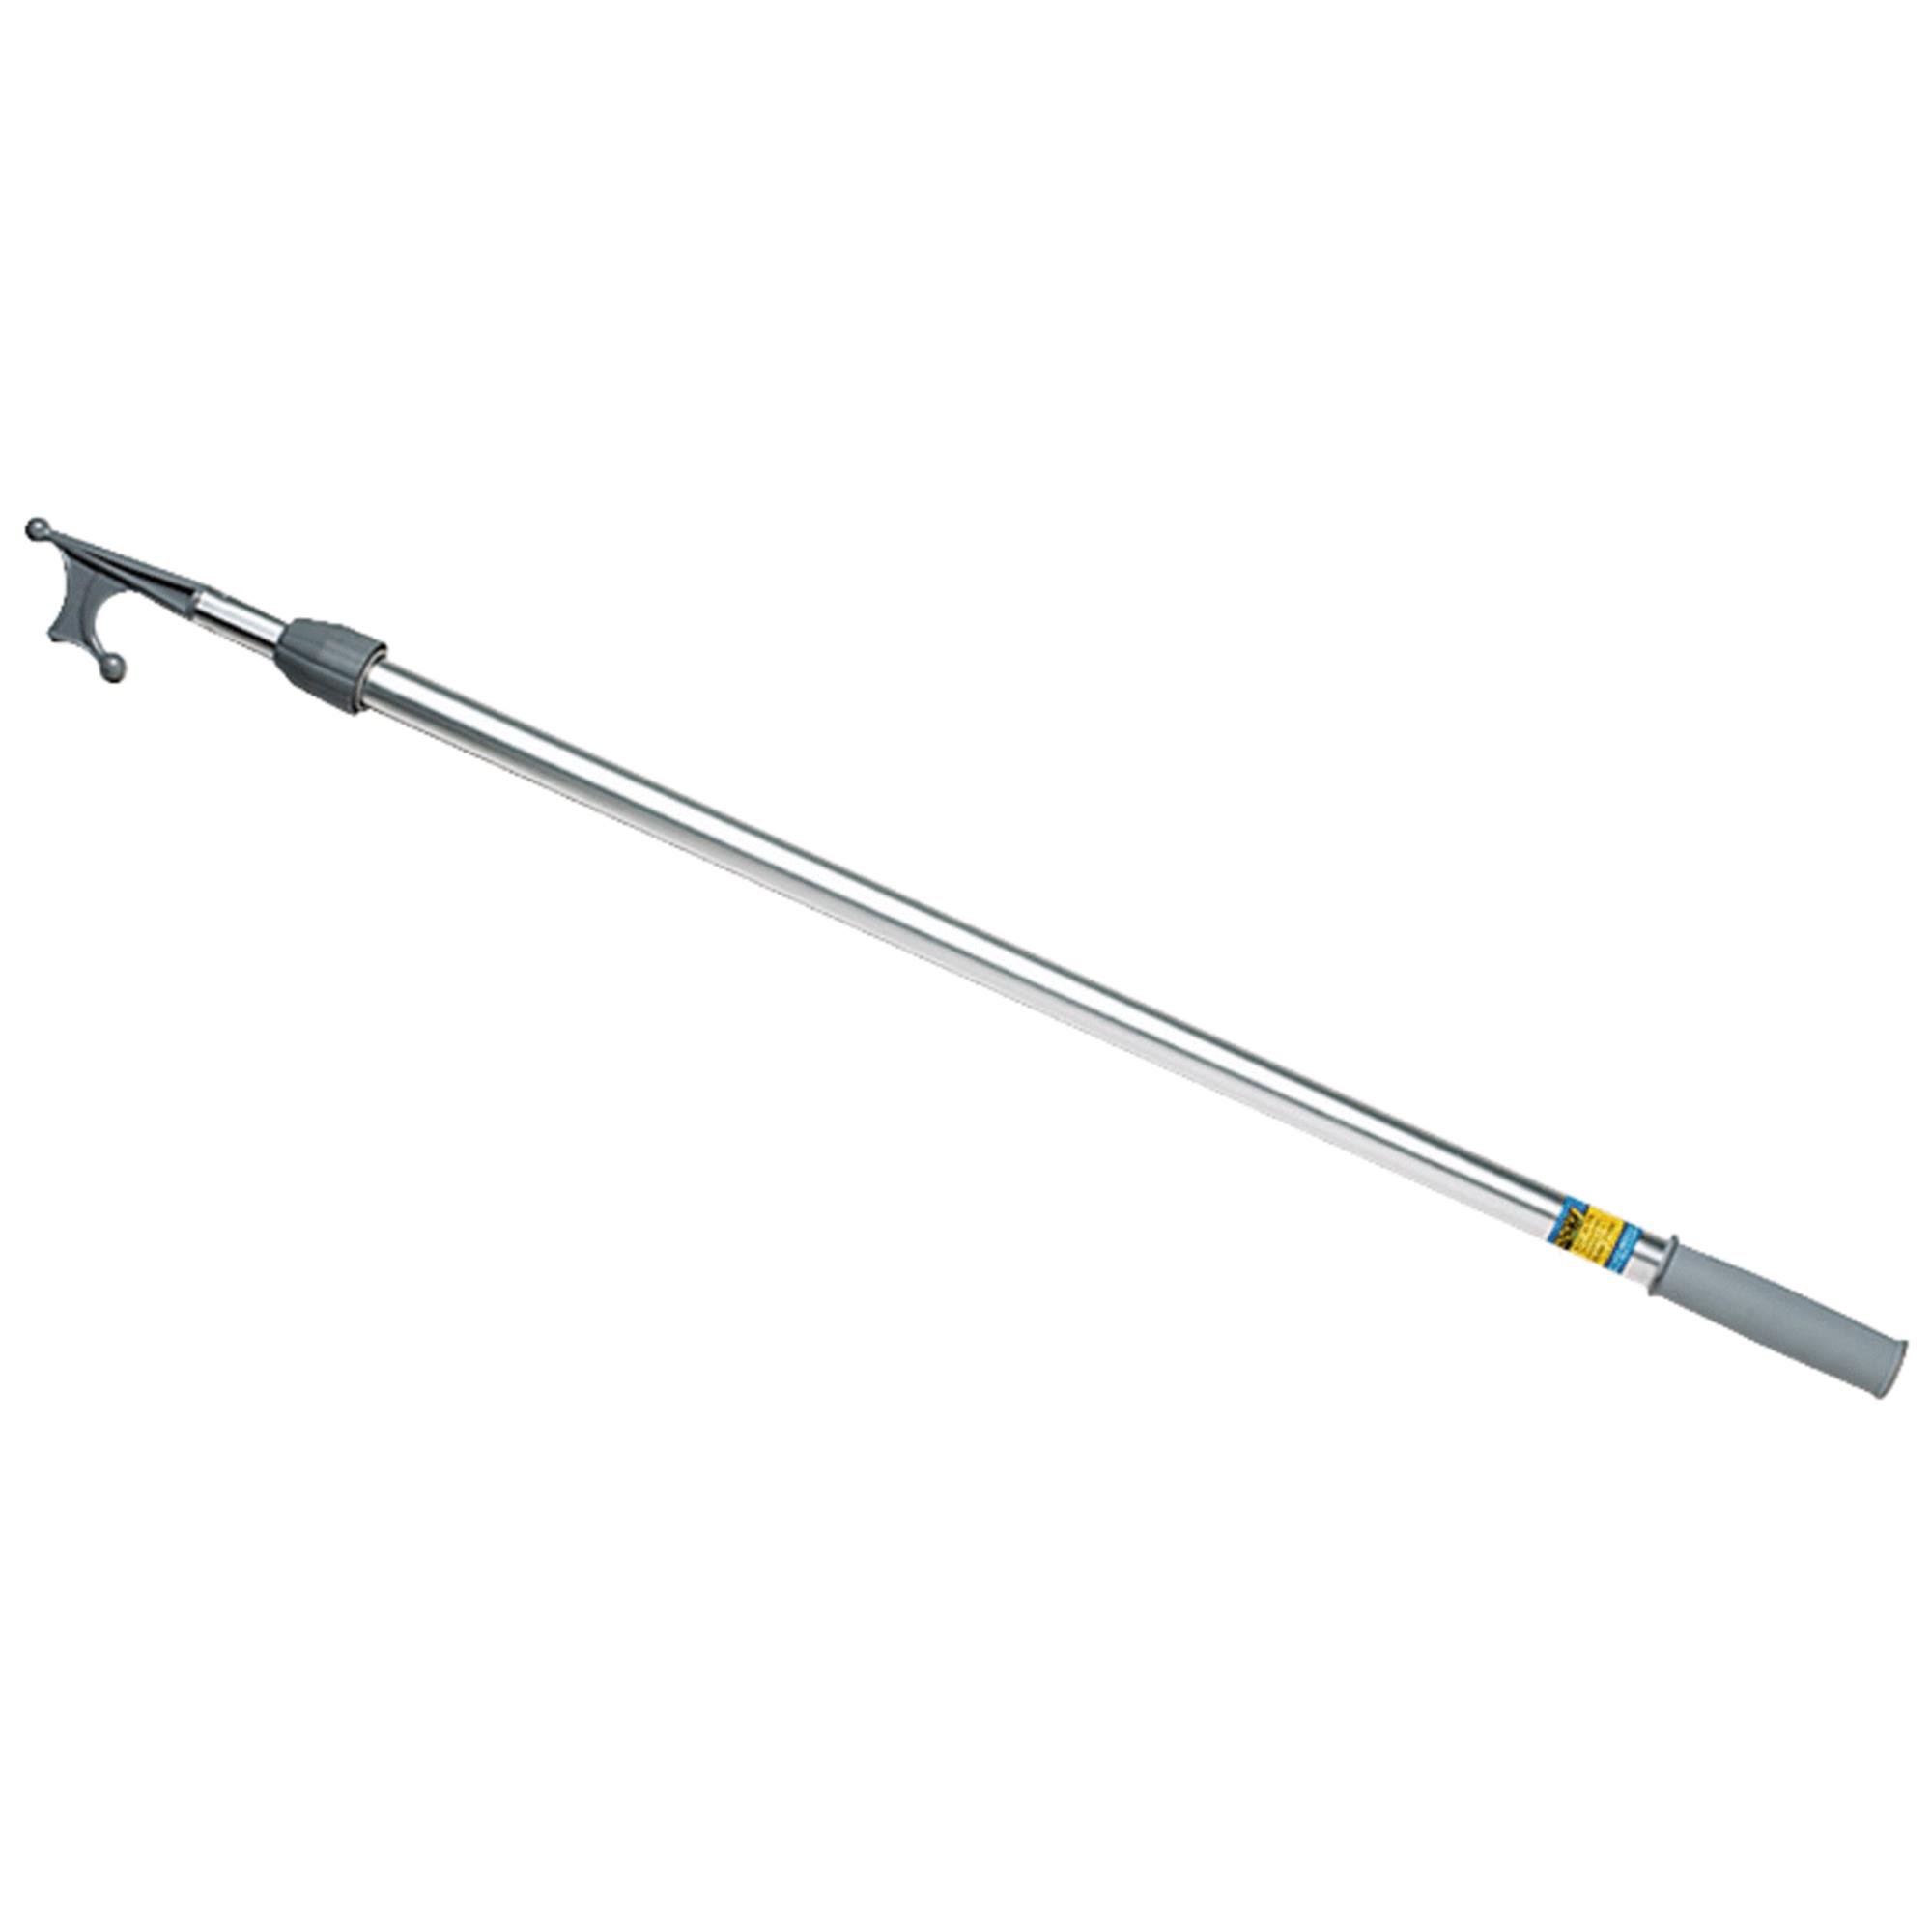 Seachoice Telescoping Boat Hook, 4' to 7' by Seachoice